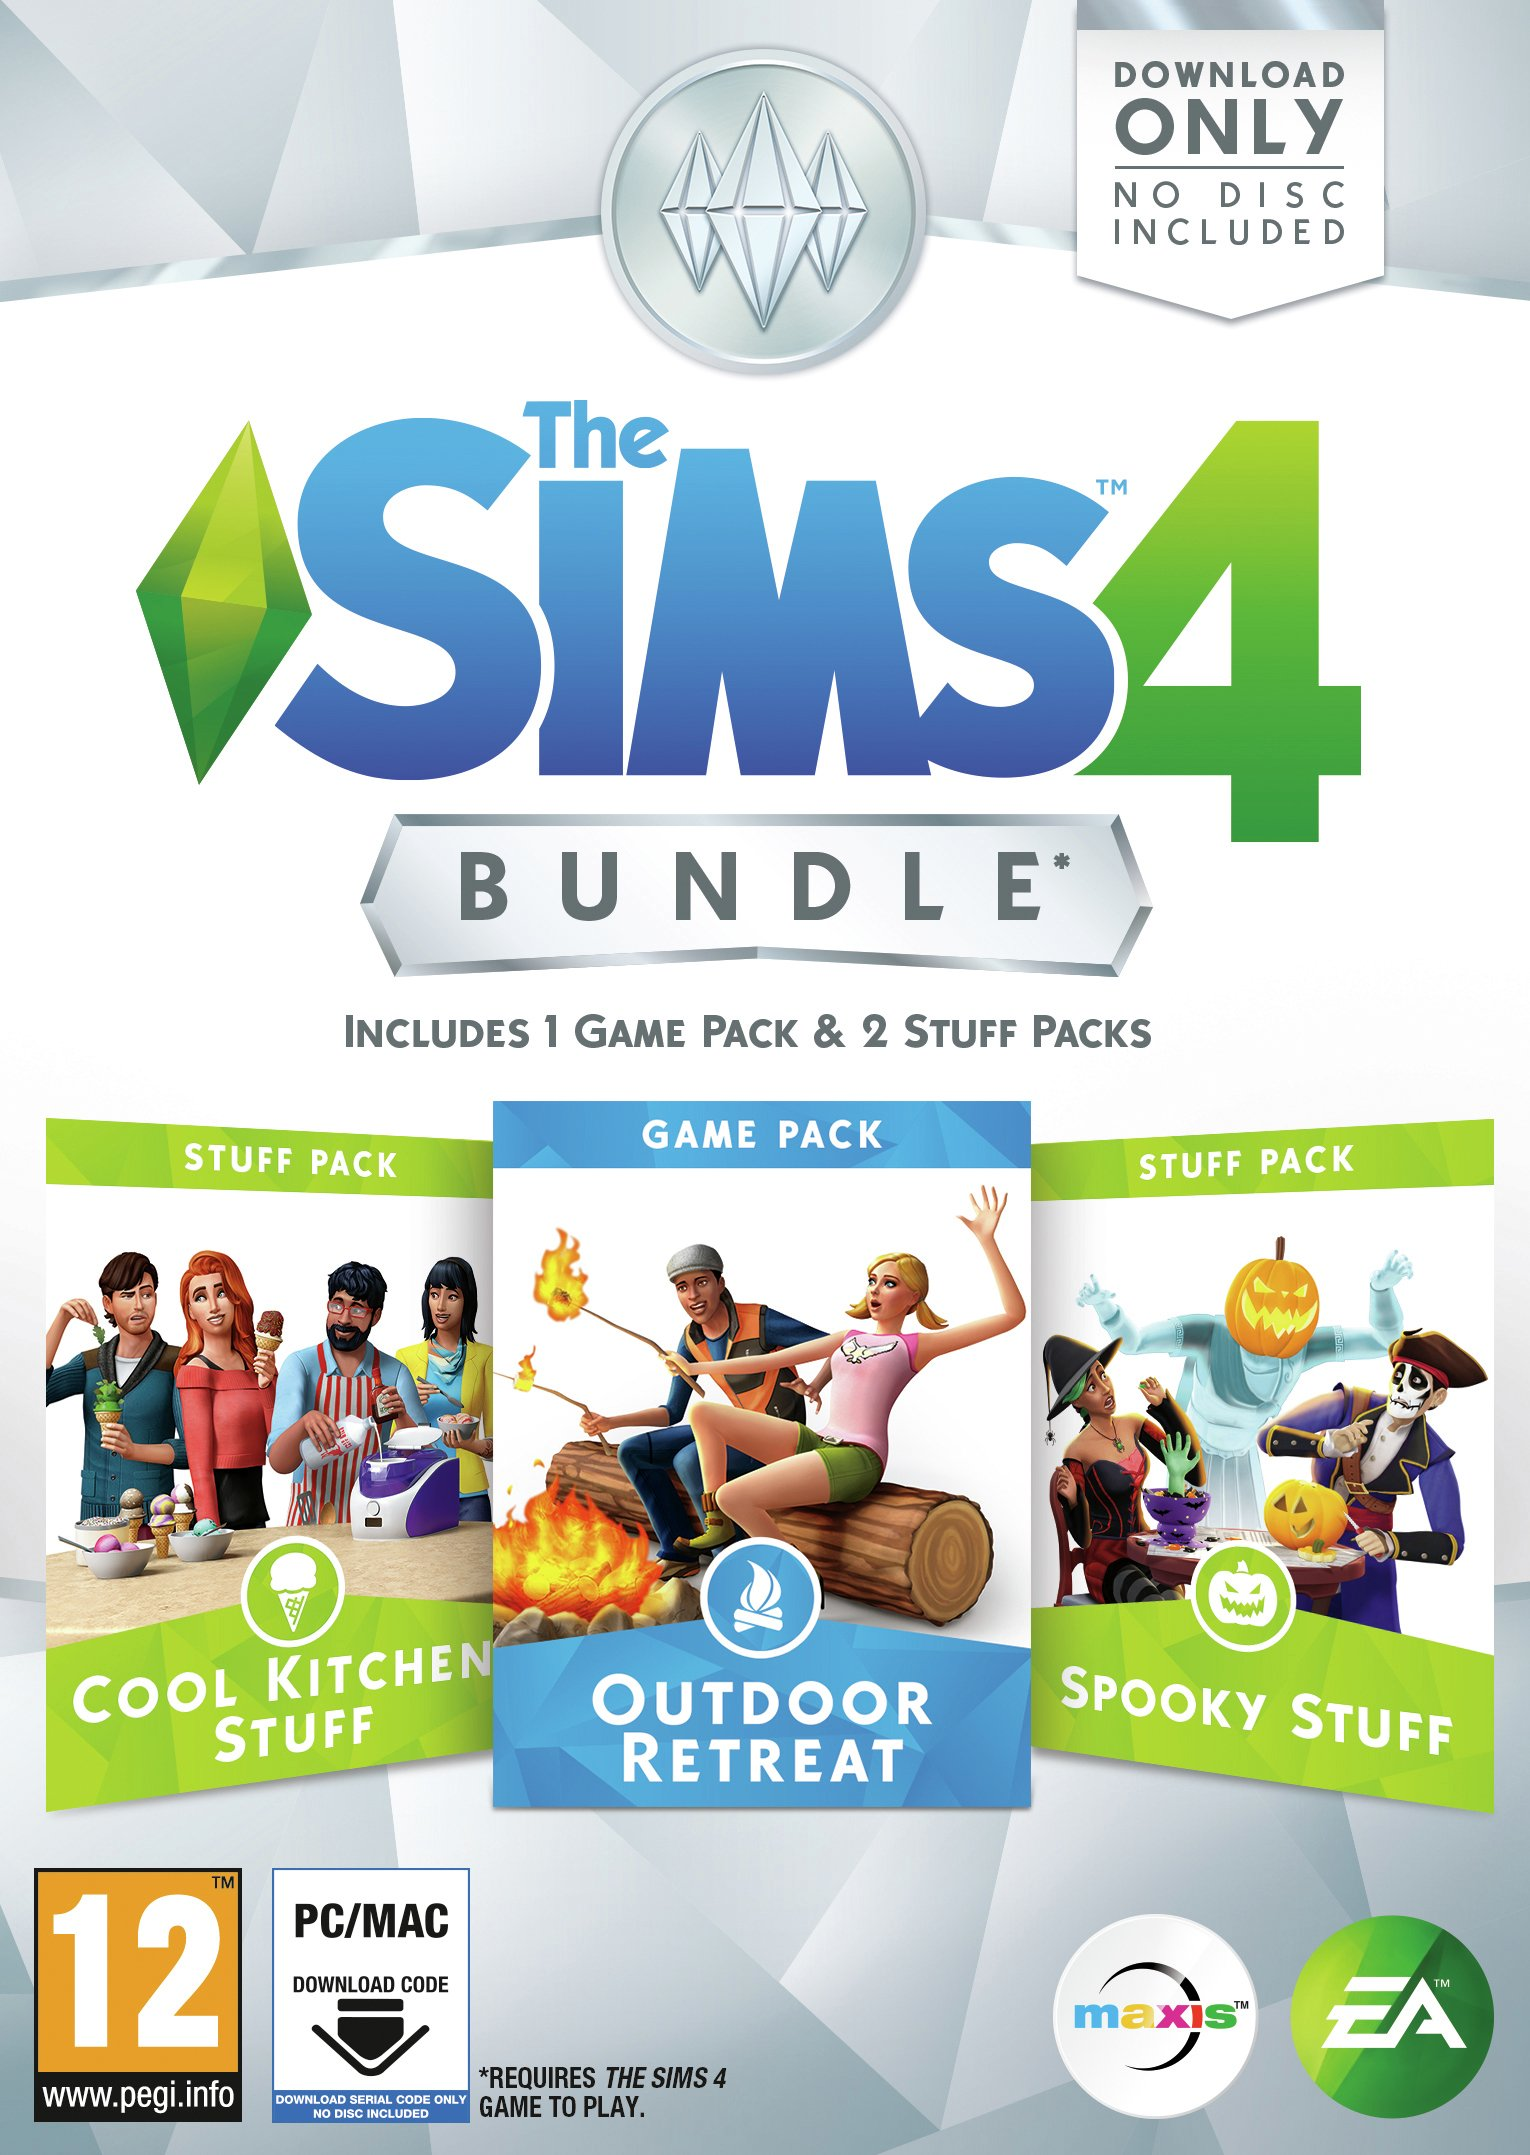 The Sims 4 Outdoor Retreat Bundle Pack.